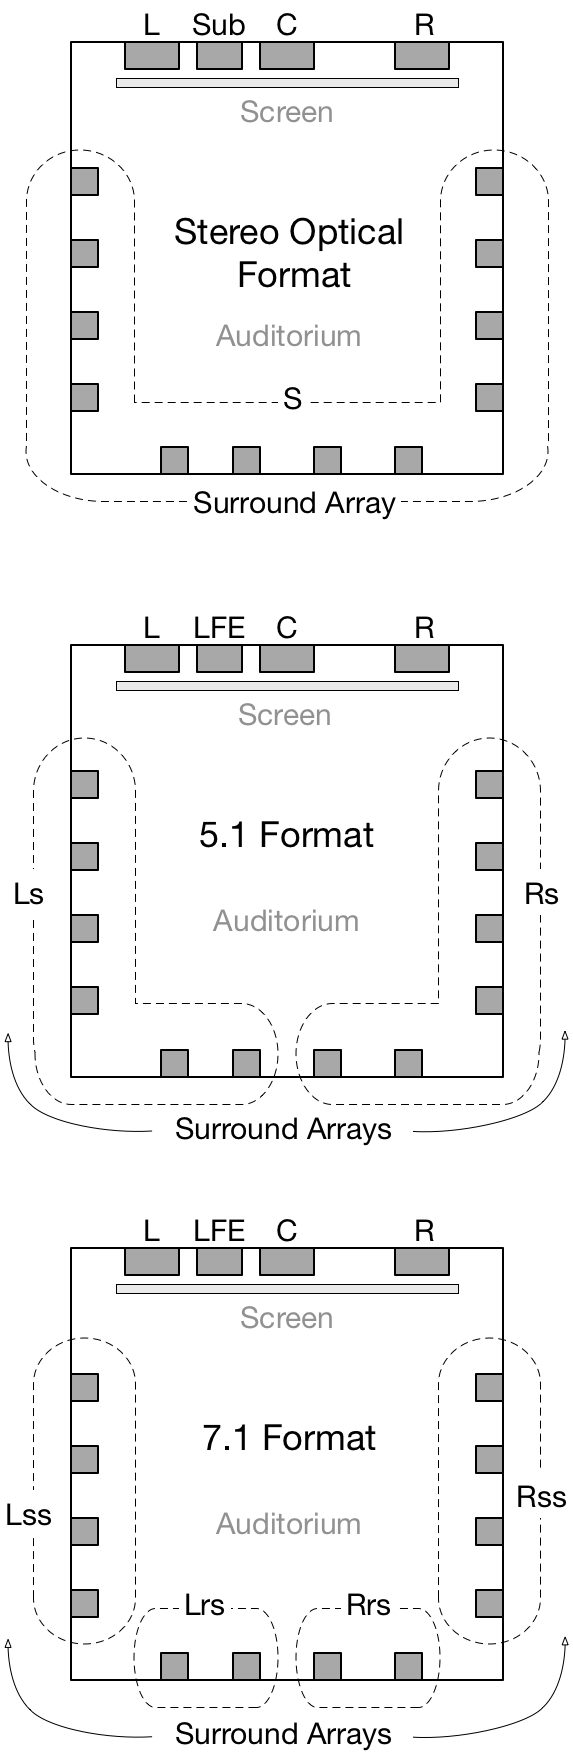 Cinema speaker formats: Stereo Optical, 5.1 Sound, and 7.1 Sound